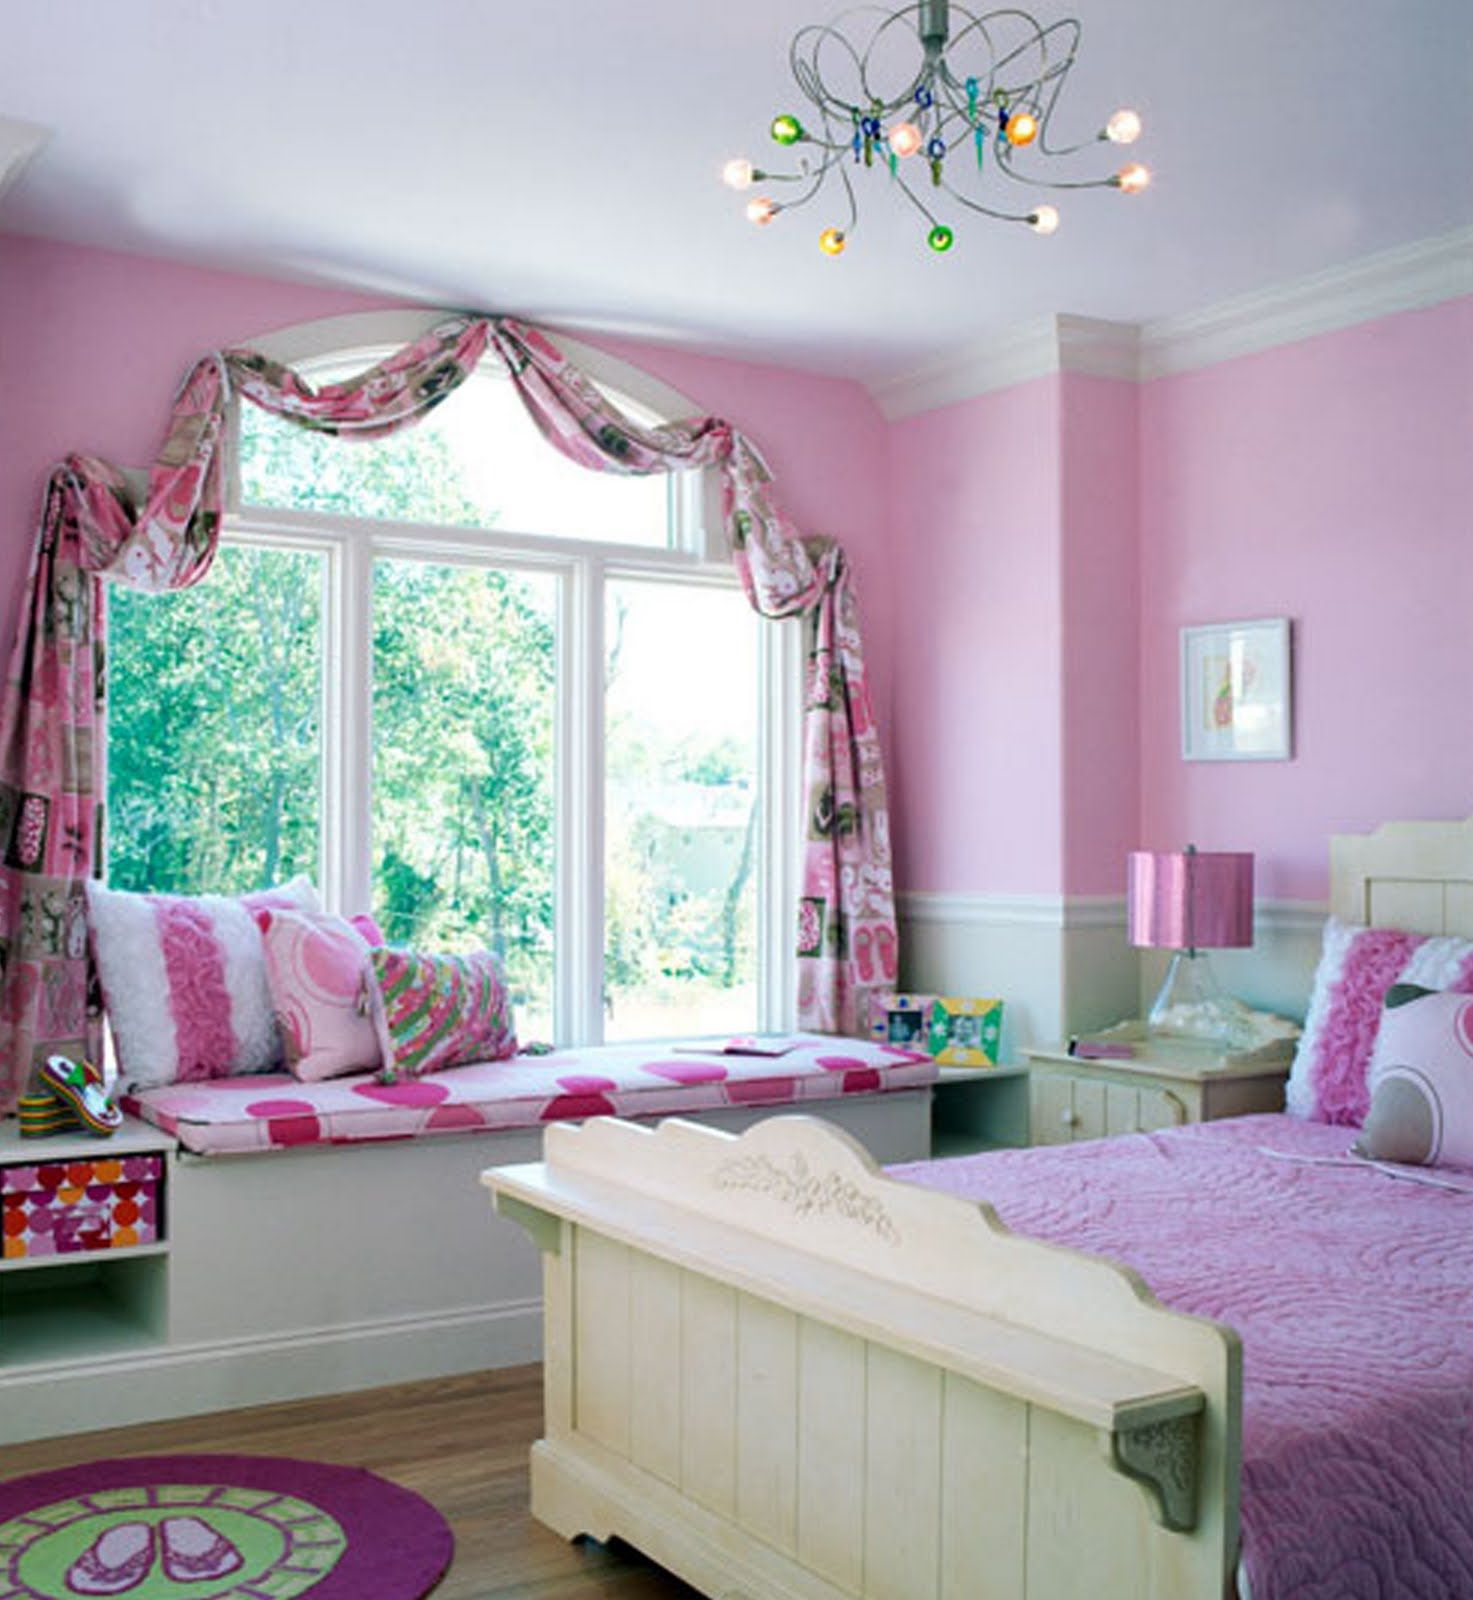 Bedroom designs for teenage girls purple - Excellent Girls Room Design Ideas With Creative Purple Floral